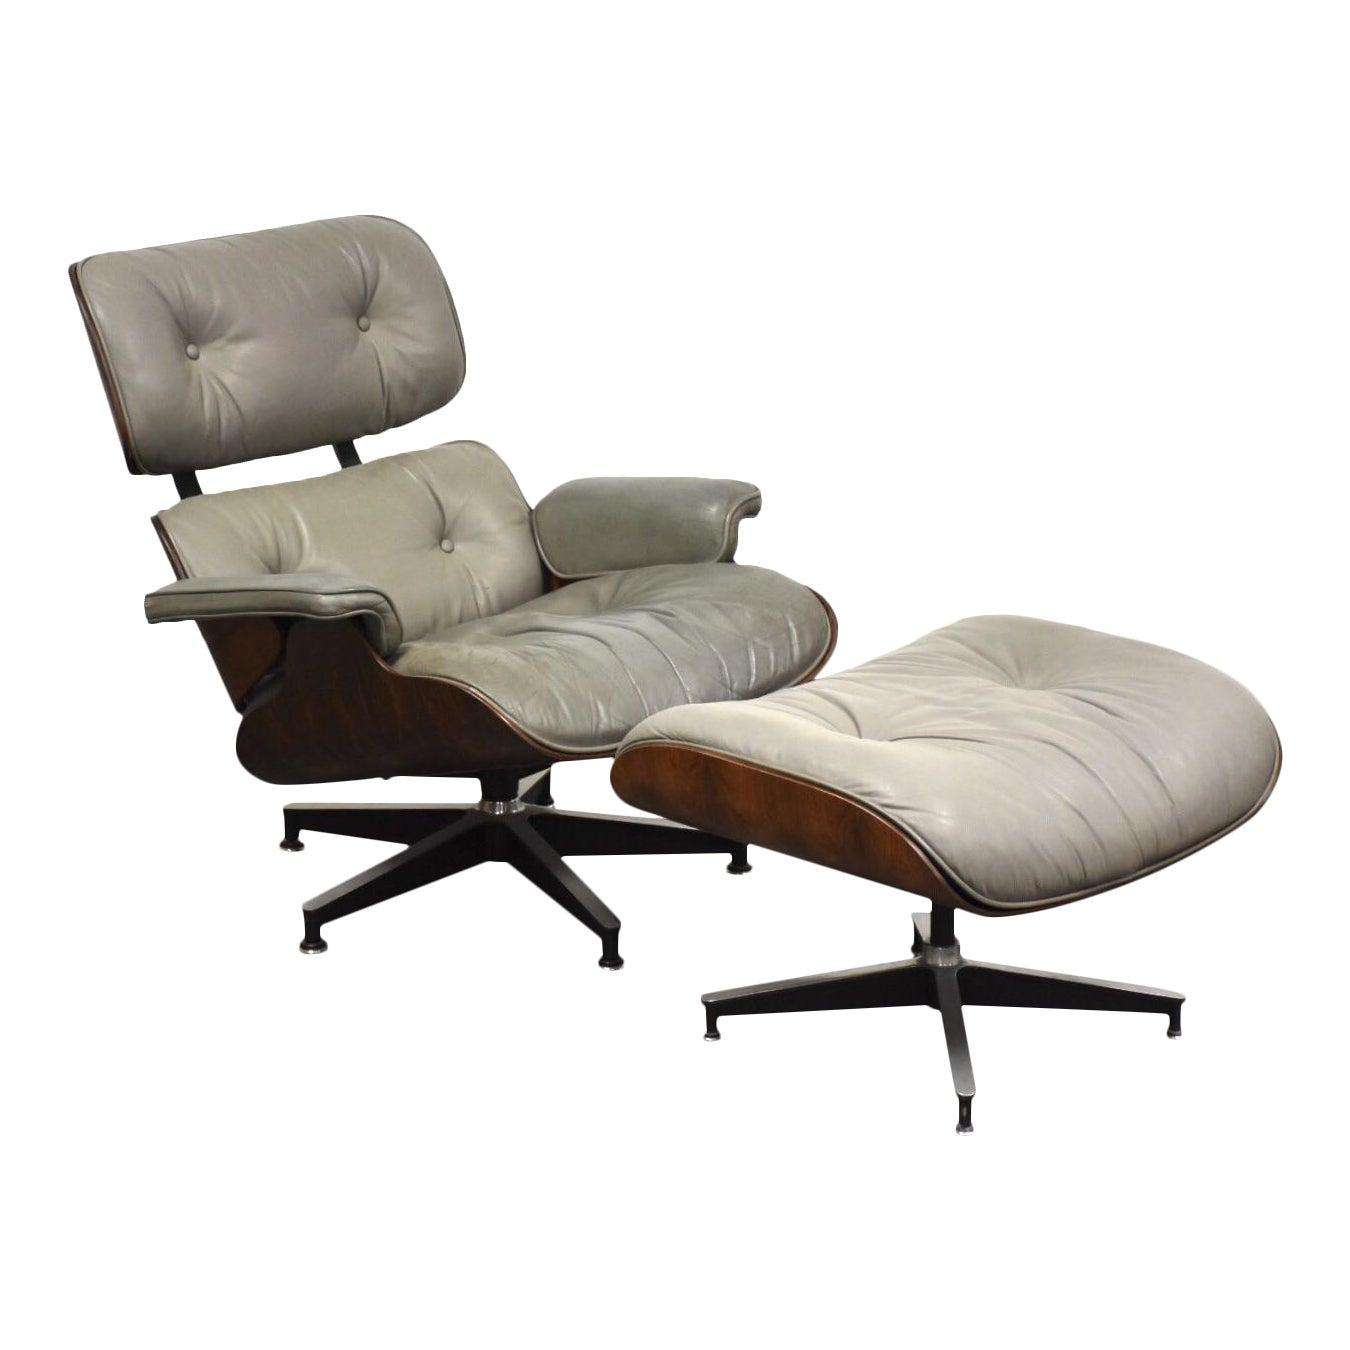 Eames Rosewood 670 Lounge Chair And Ottoman   Mixed Modern Furniture   Mid  Century Furniture Dealer